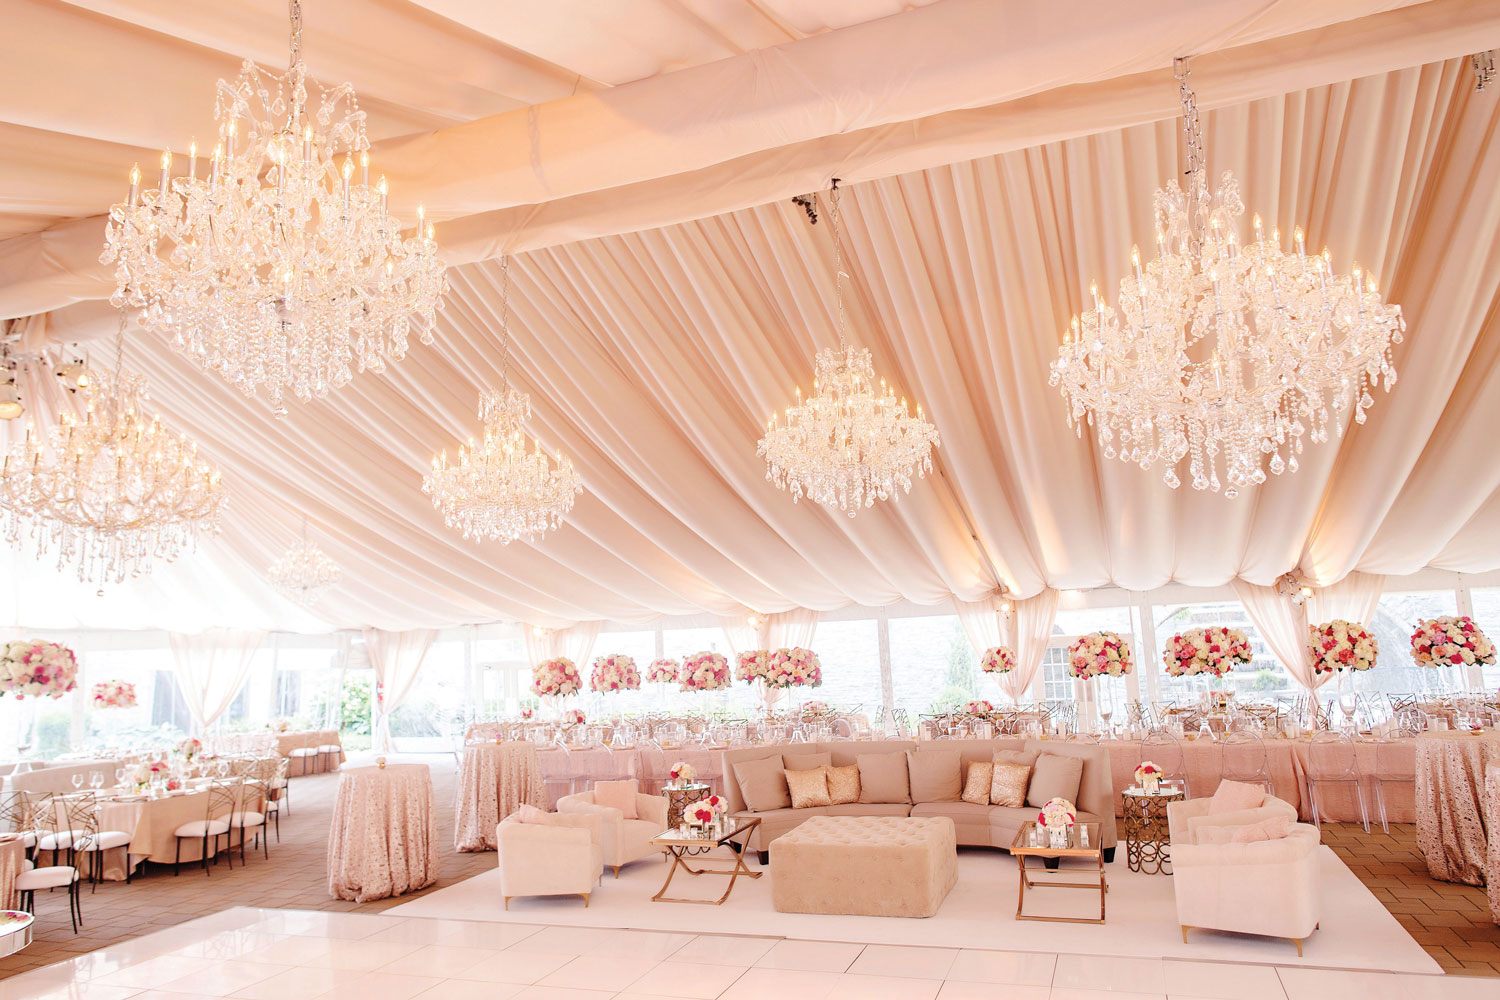 Inside Weddings Spring 2019 issue pretty wedding reception pink with drapery and chandeliers